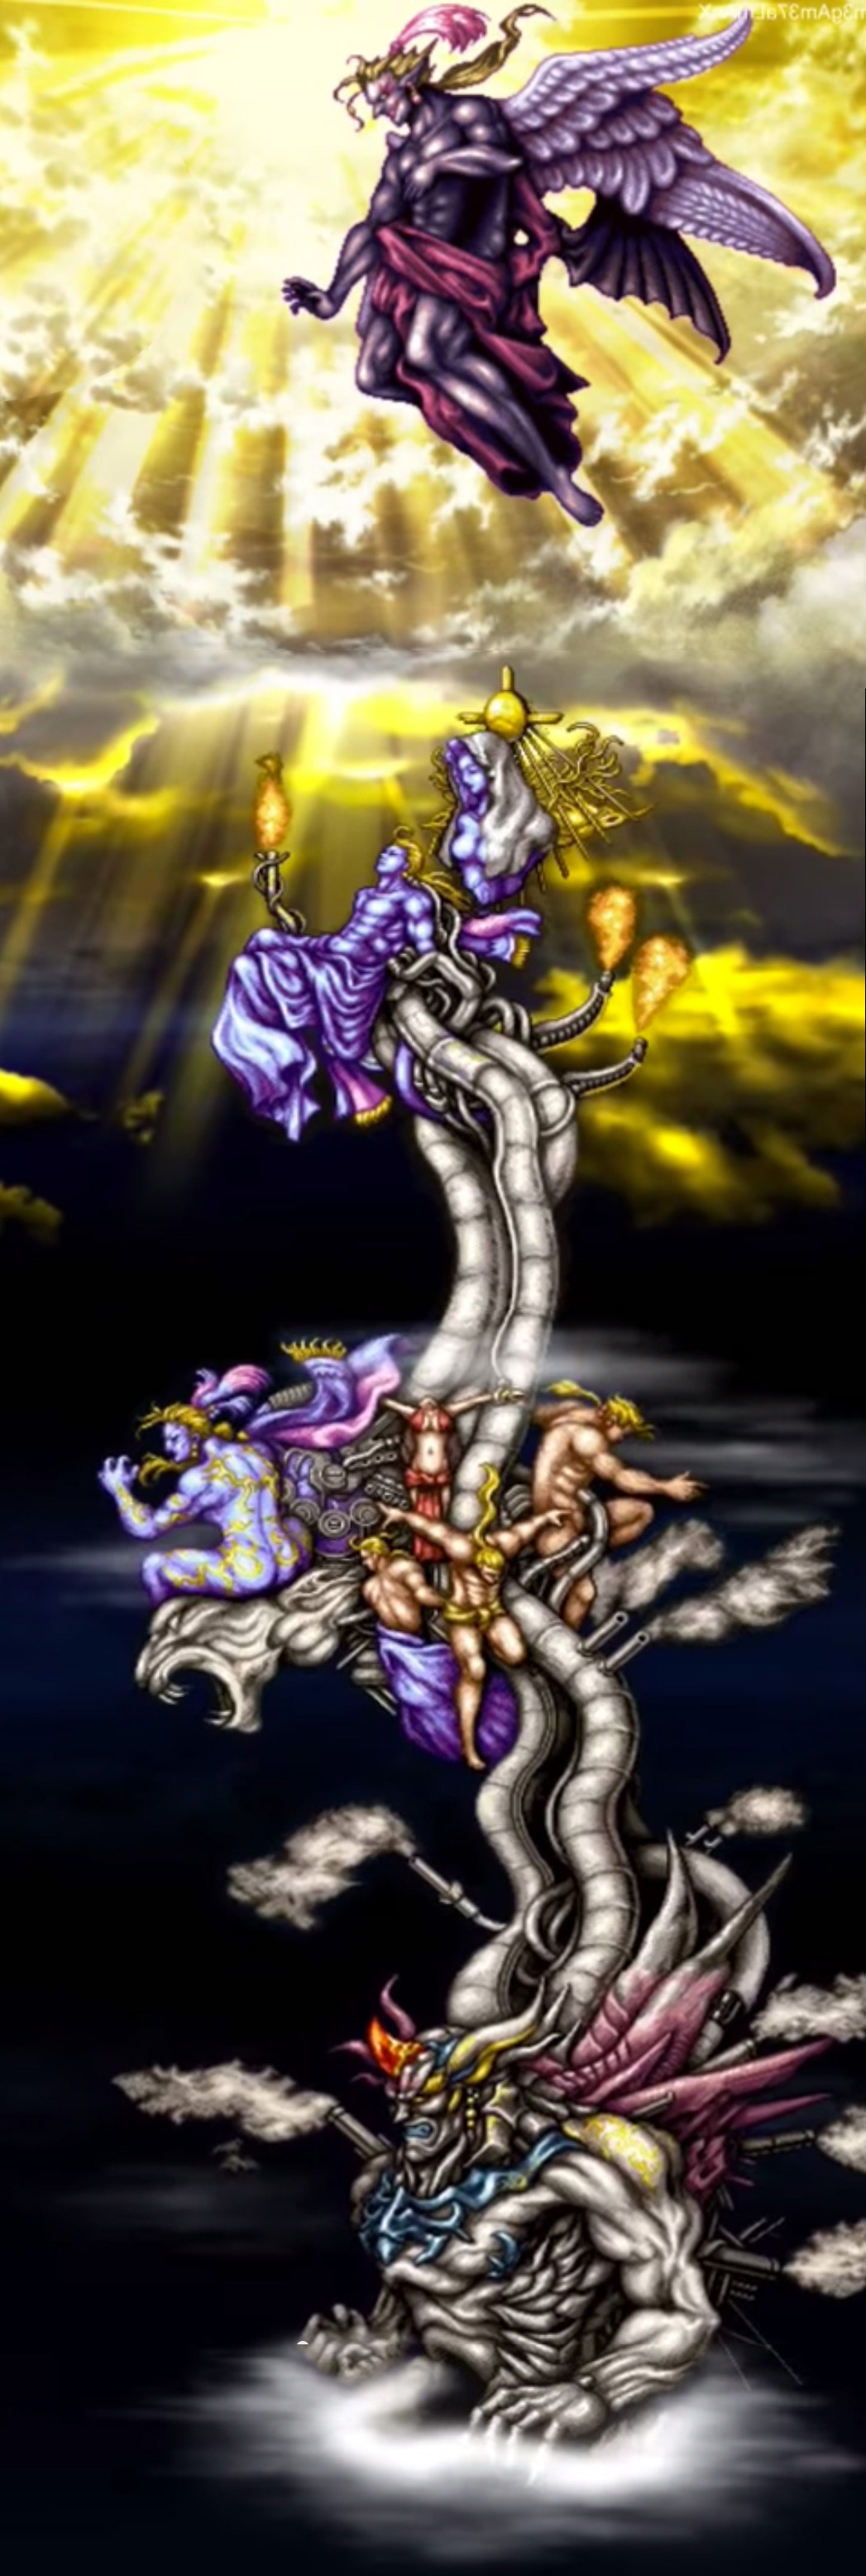 Tower of Gods - iOS | Gaming | Final fantasy vi, Final ...